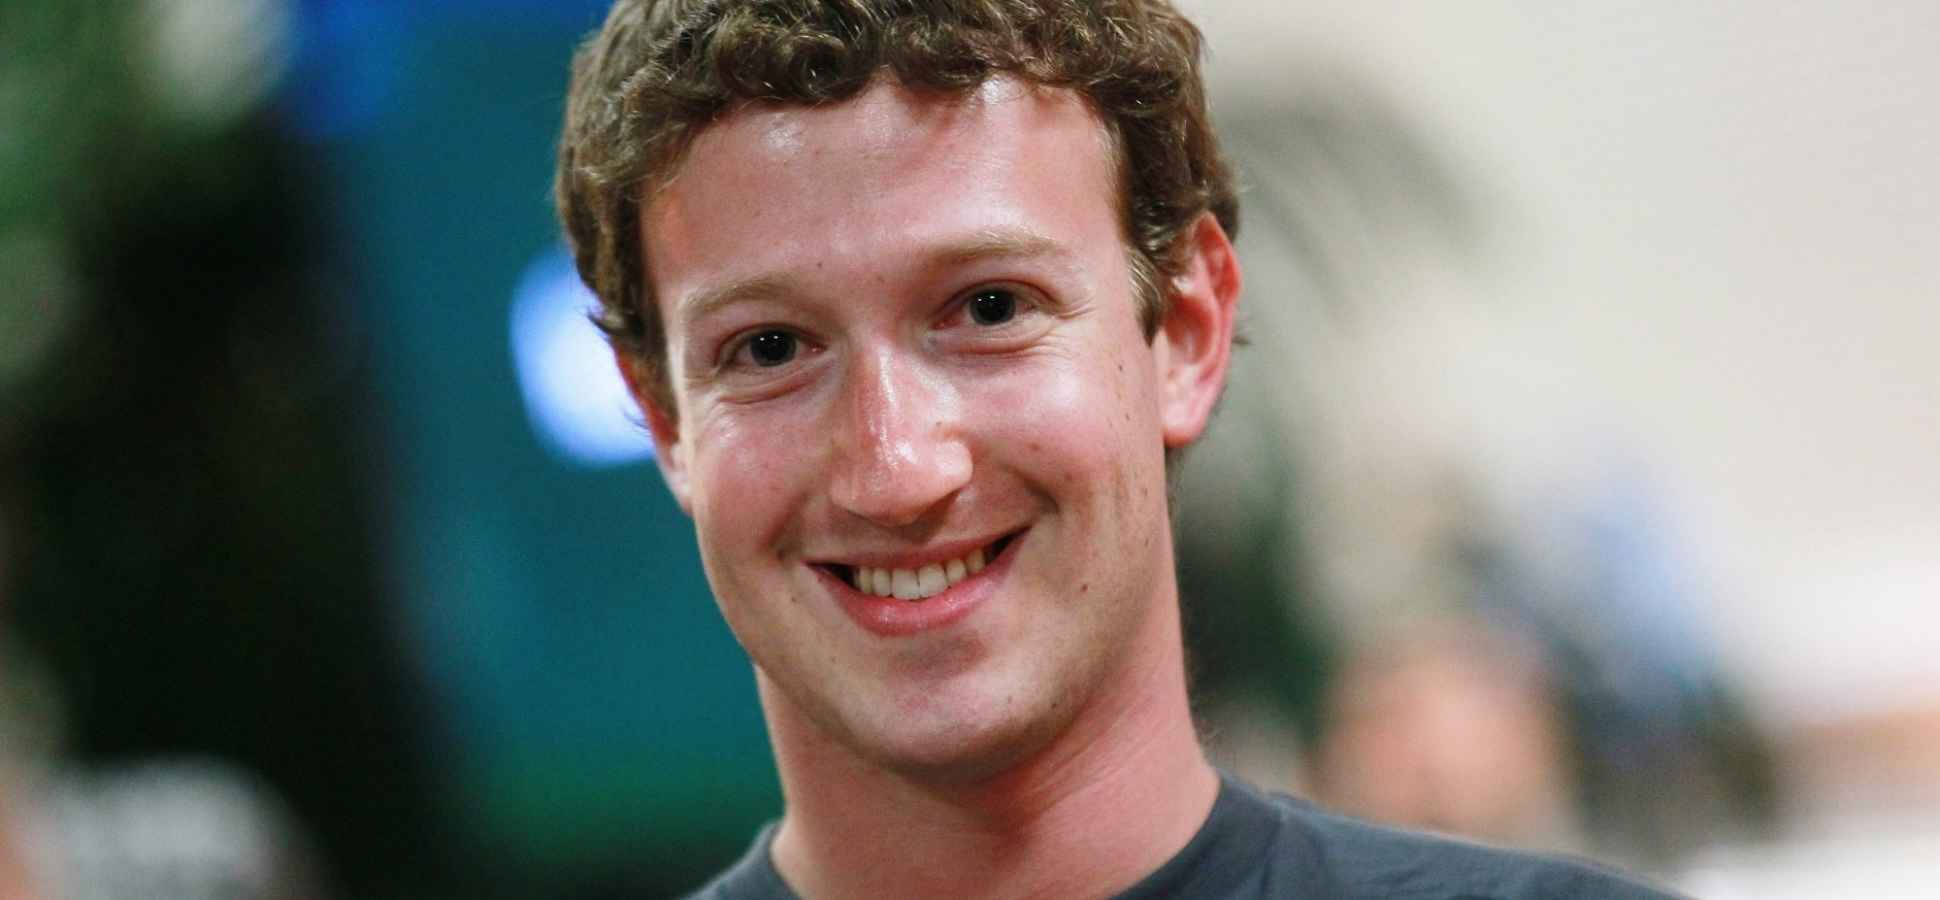 The Startup That Mark Zuckerberg and Jack Dorsey's 'Silicon Valley Billionaires Club' Just Invested in